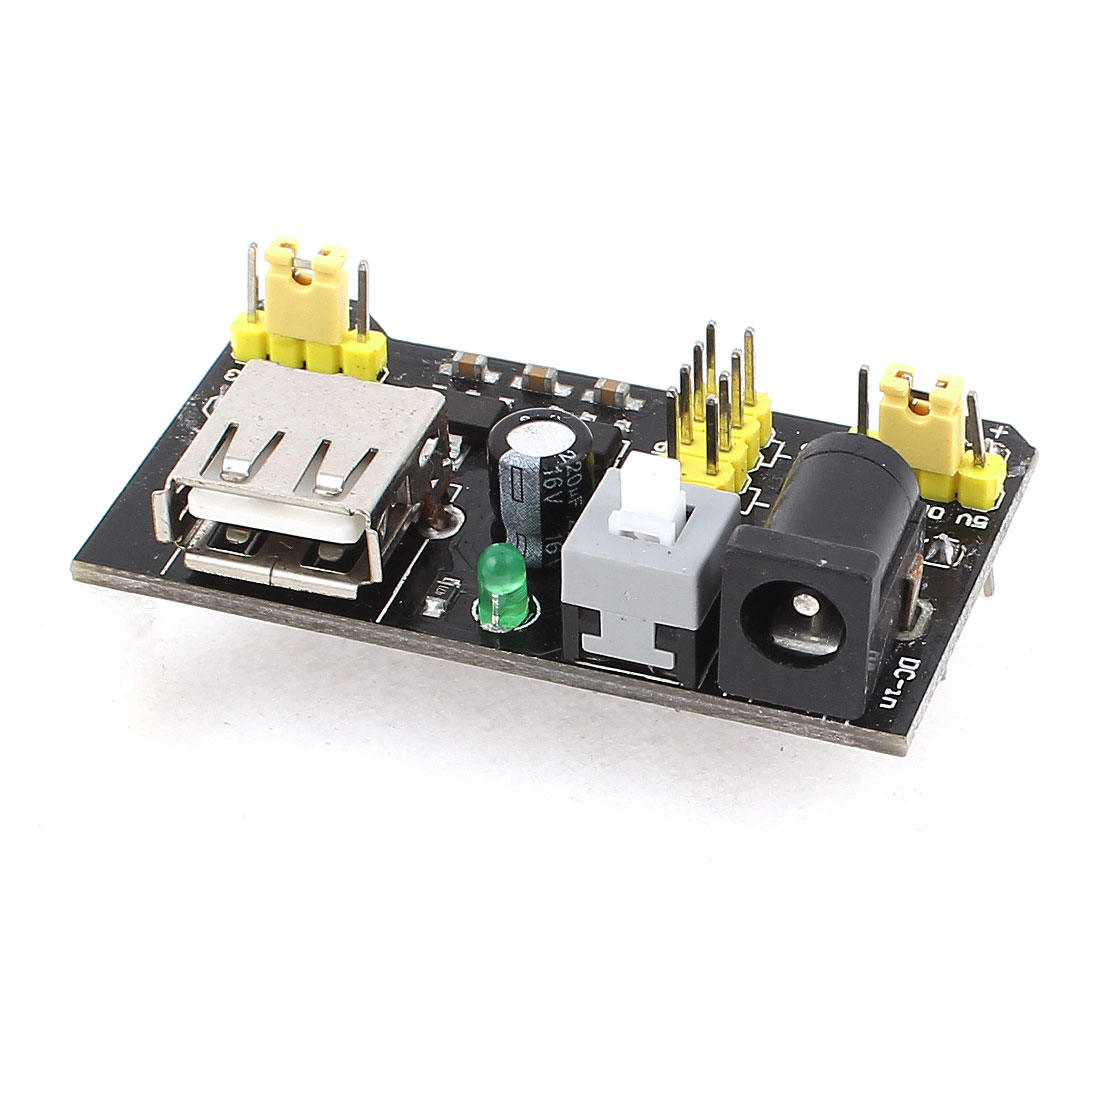 MB102 Breadboard Power Supply Module 3.3V/5V for Solderless Bread Board